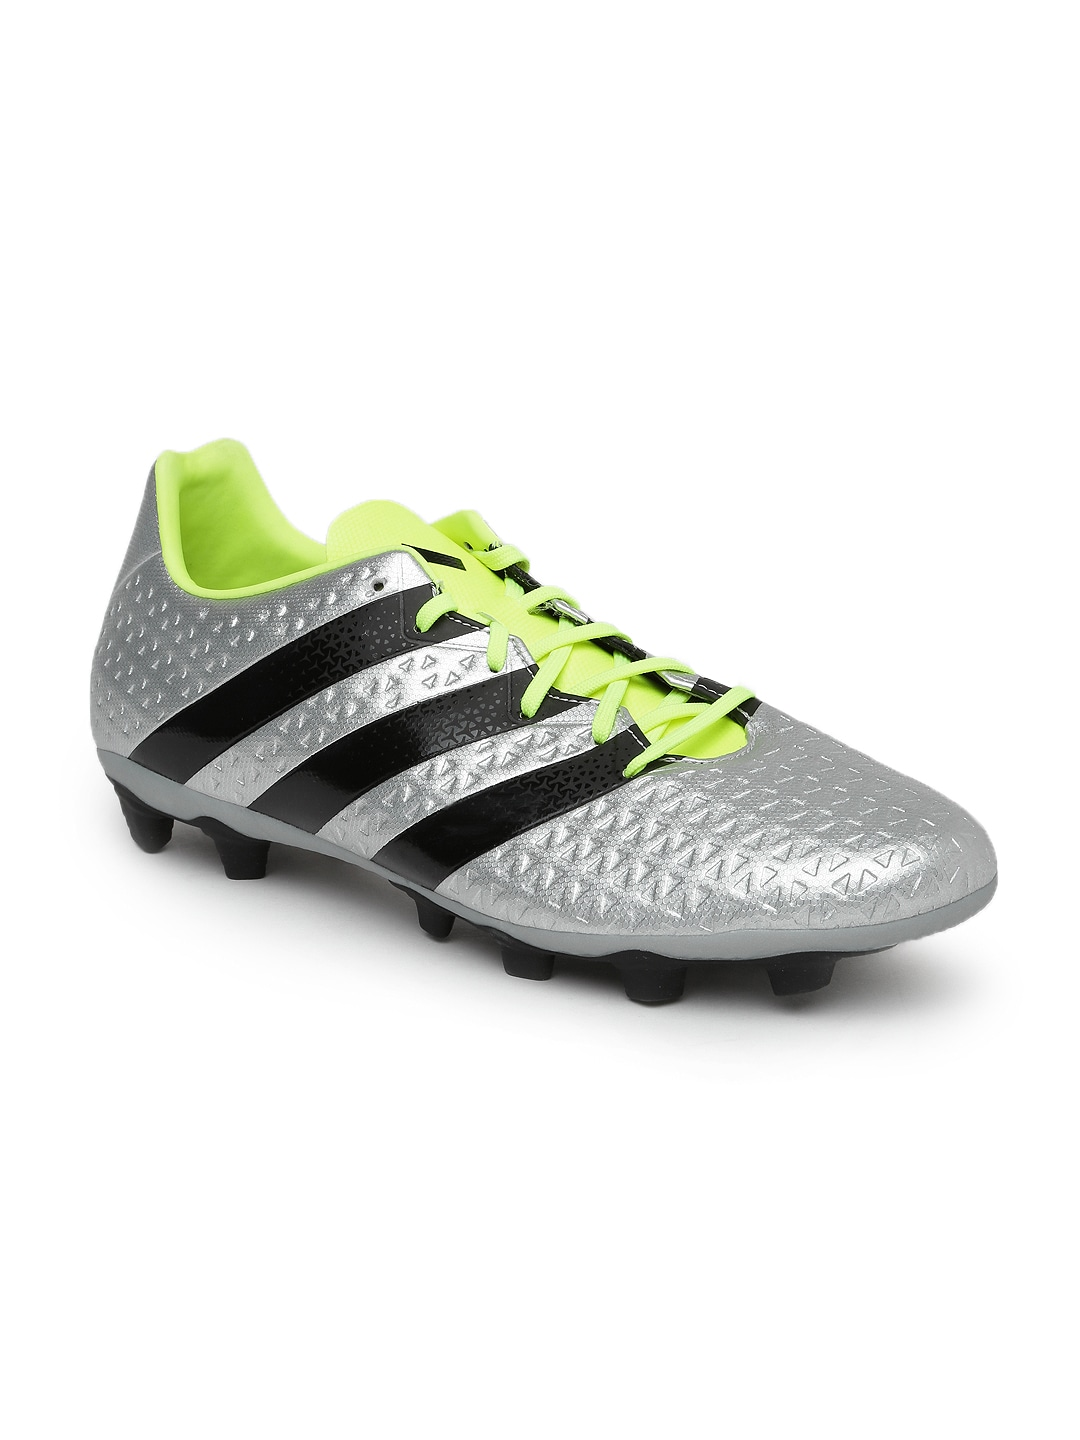 huge selection of 1d0c4 23dba Adidas s79728 Men Silver Toned Ace 16 4 Fxg Football Shoes- Price in India